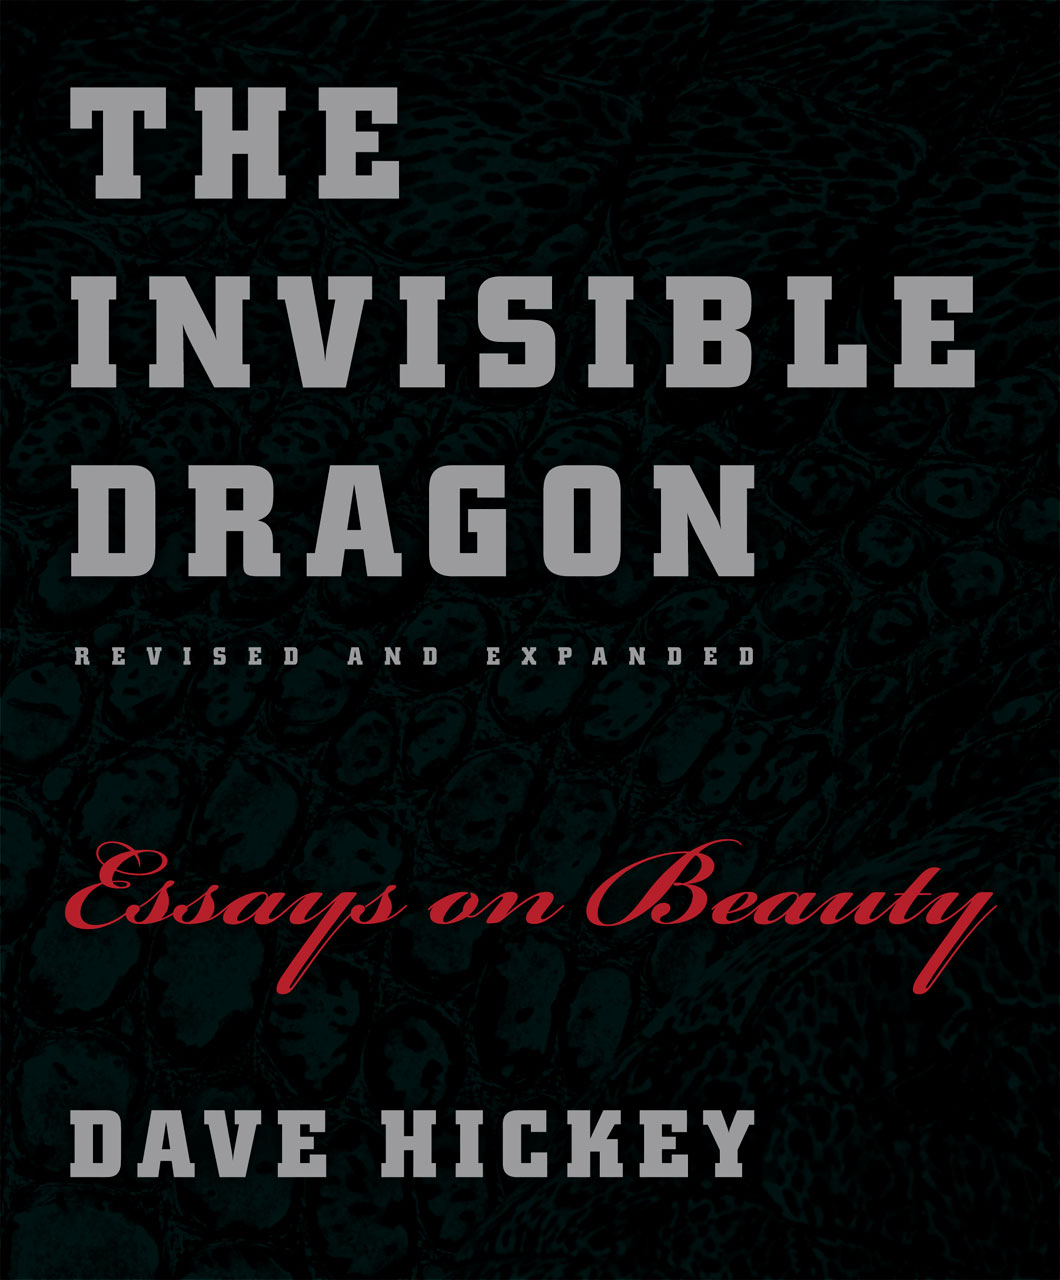 dave hickey  dave hickey s the invisible dragon on